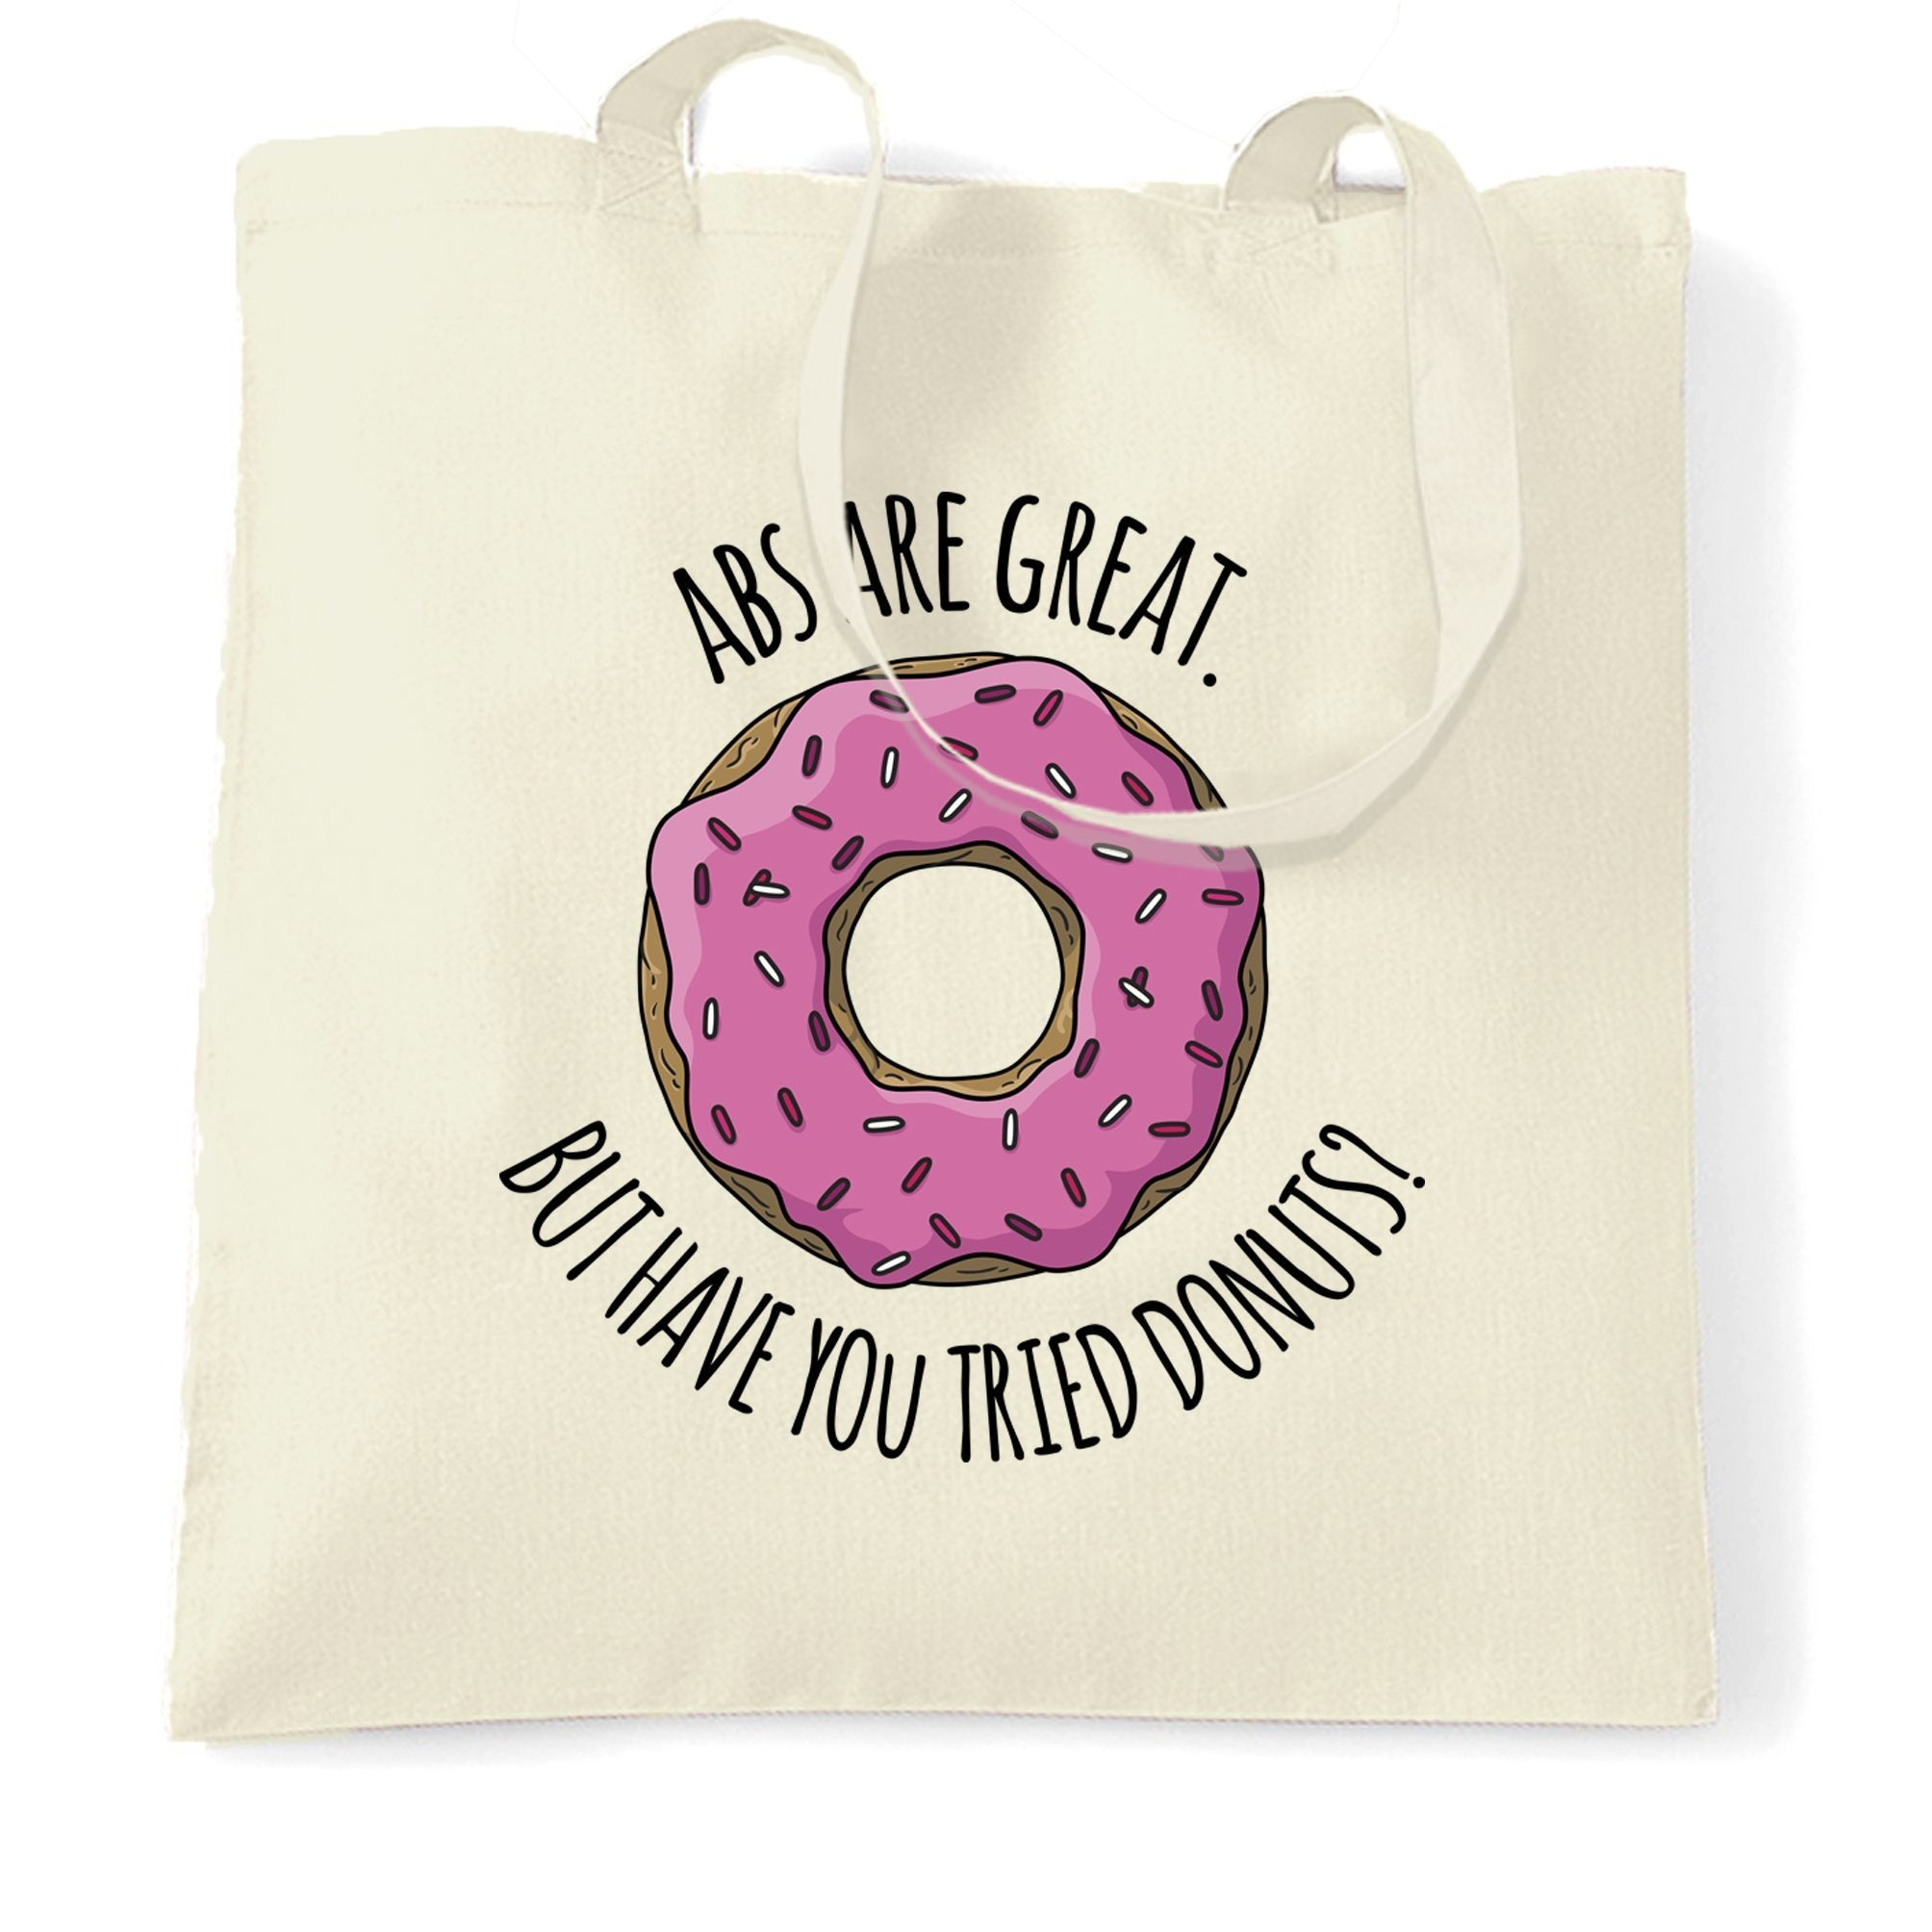 Joke Tote Bag Abs Are Great But Have You Tried Donuts?